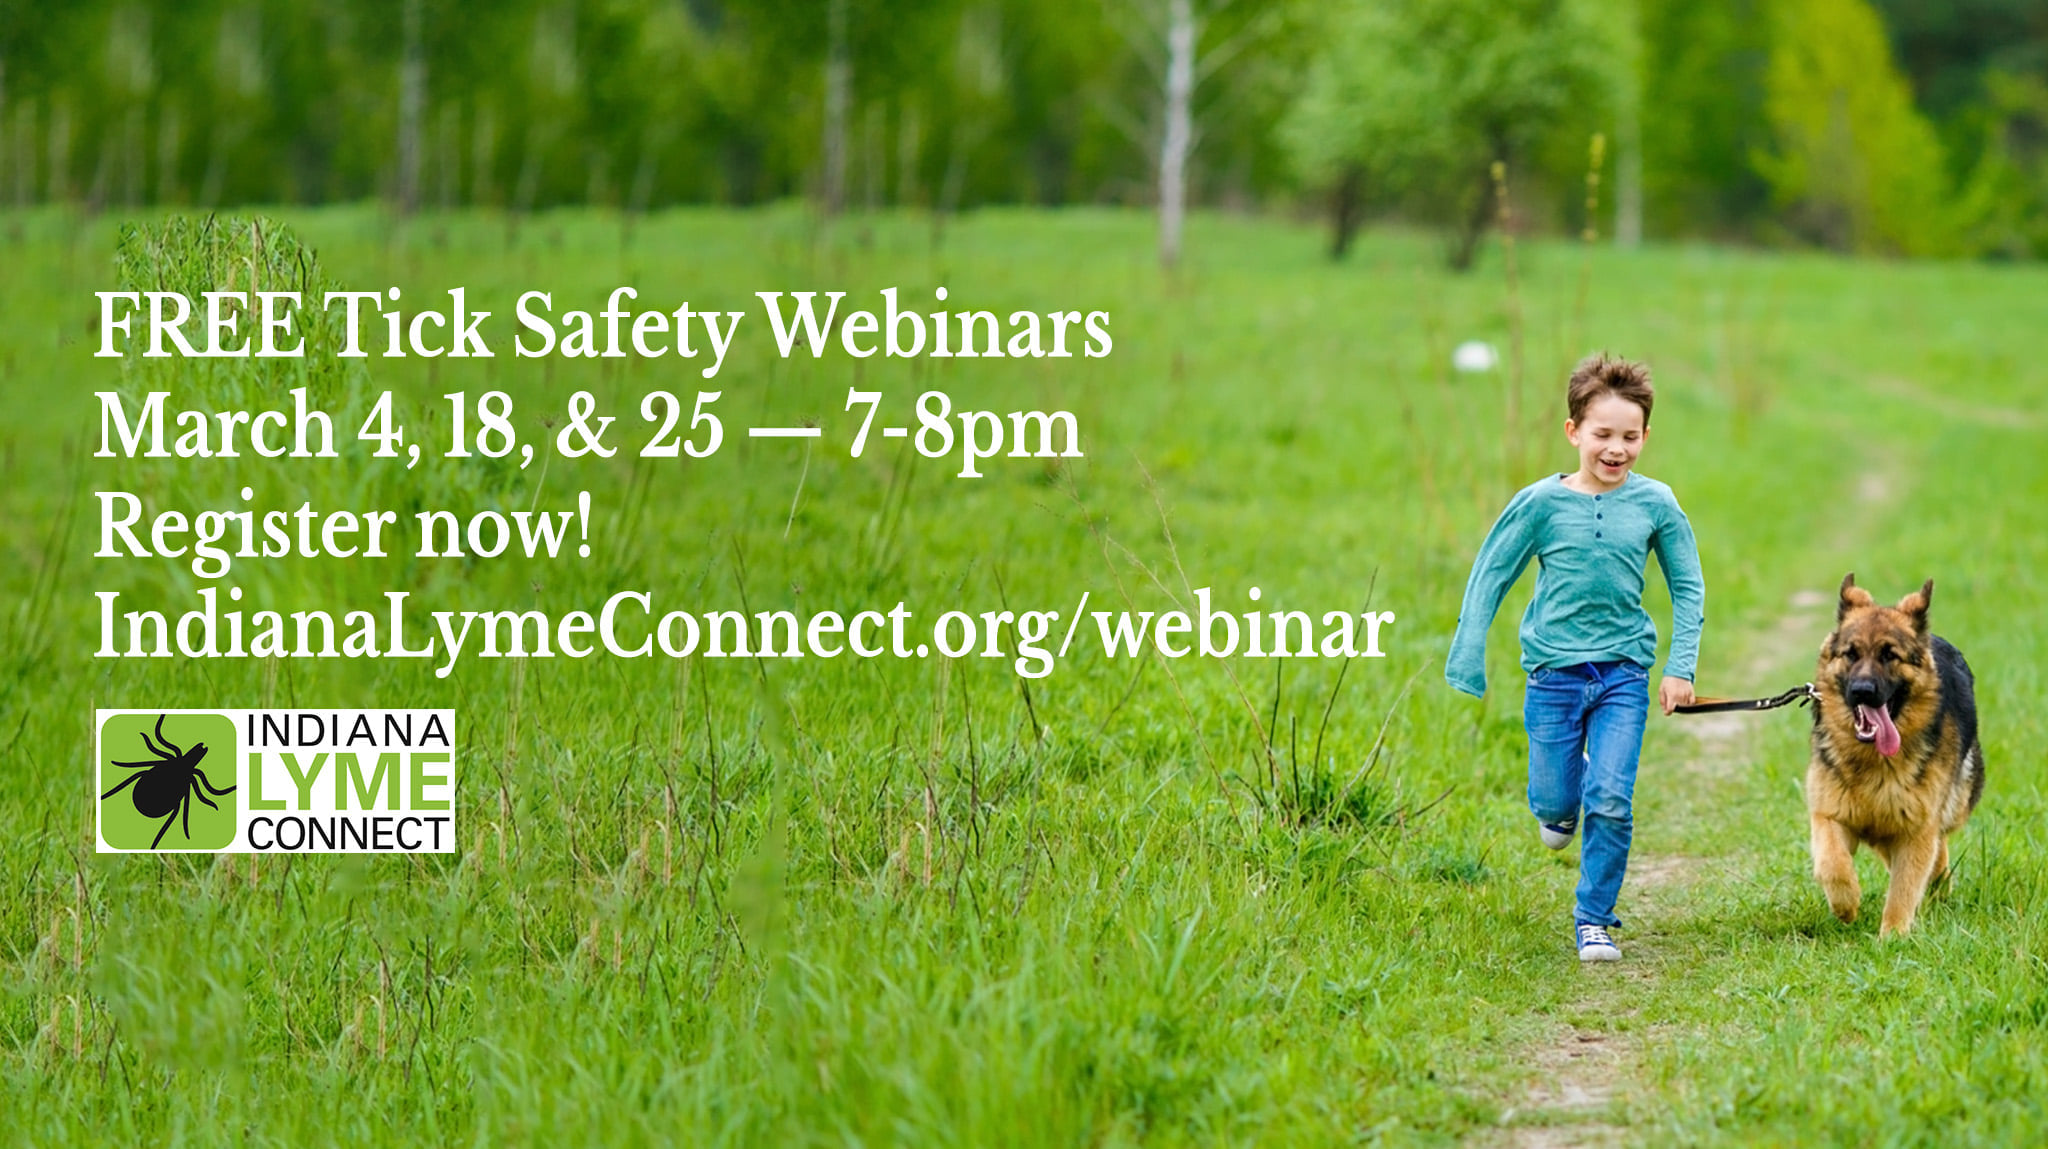 https://www.indianalymeconnect.org/wp-content/uploads/2021/02/Indiana-Lyme-Connect-Webinar.jpg